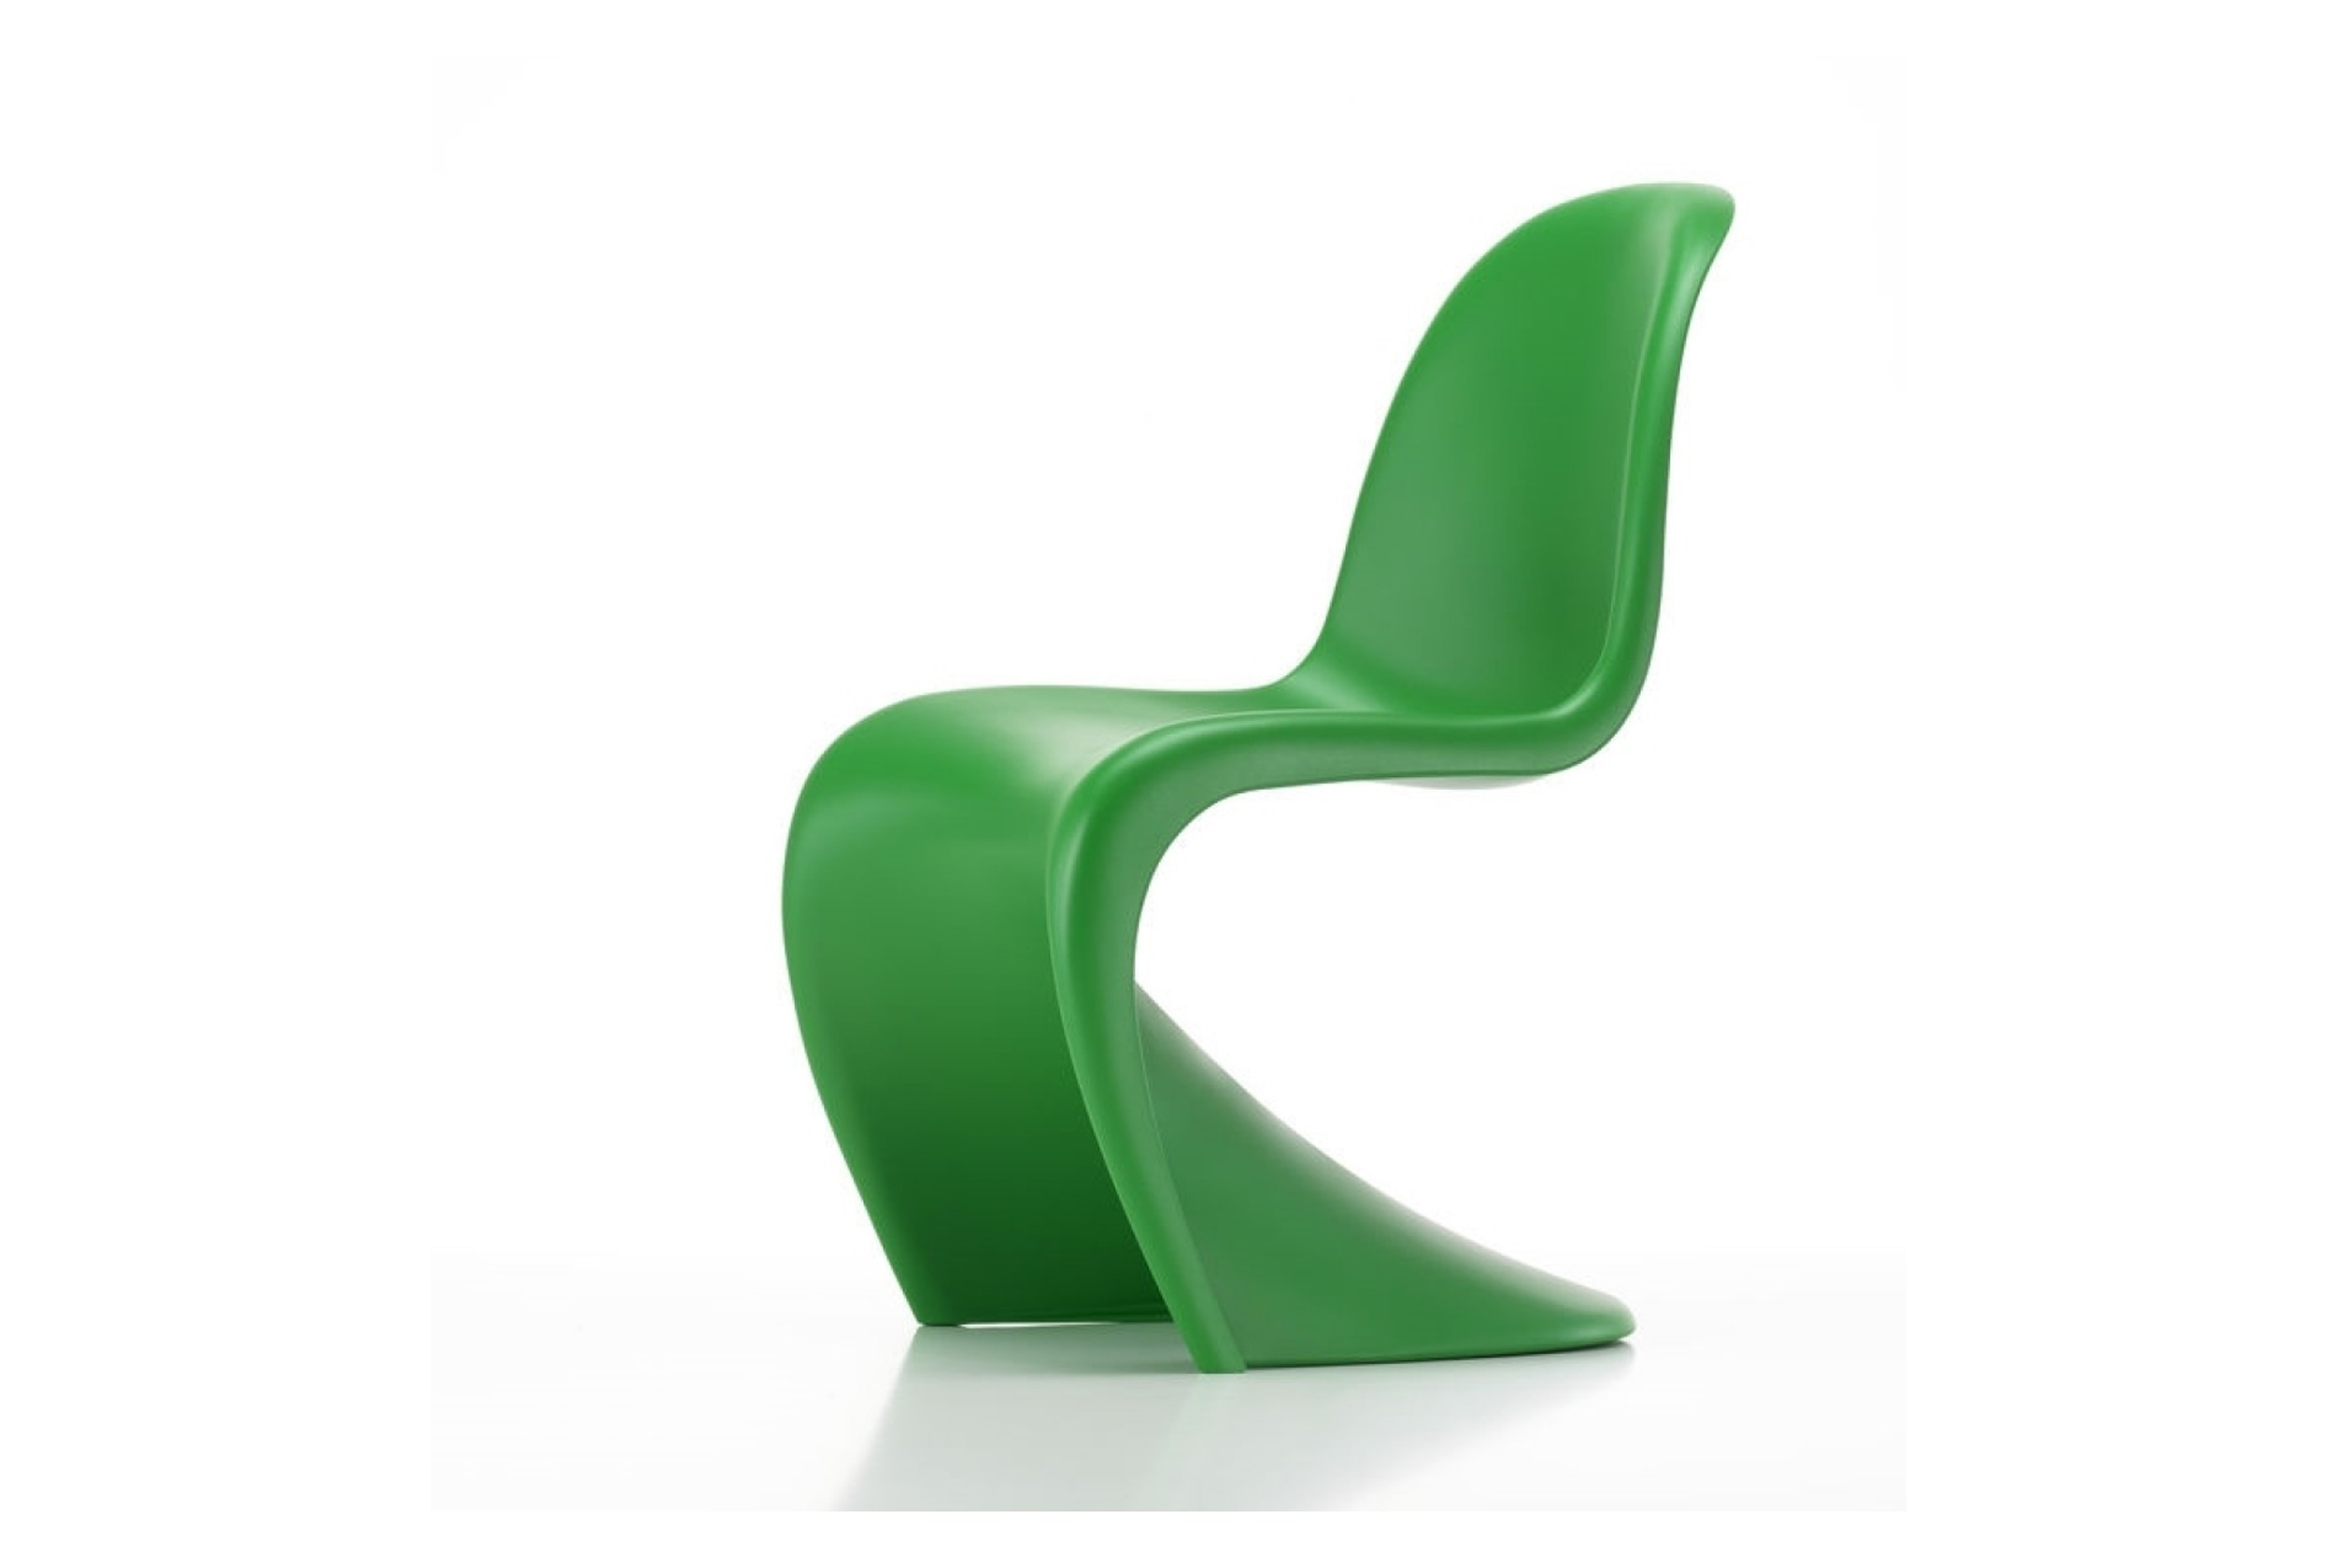 panton chair summer green verner panton vitra rezzoli designer furniture. Black Bedroom Furniture Sets. Home Design Ideas